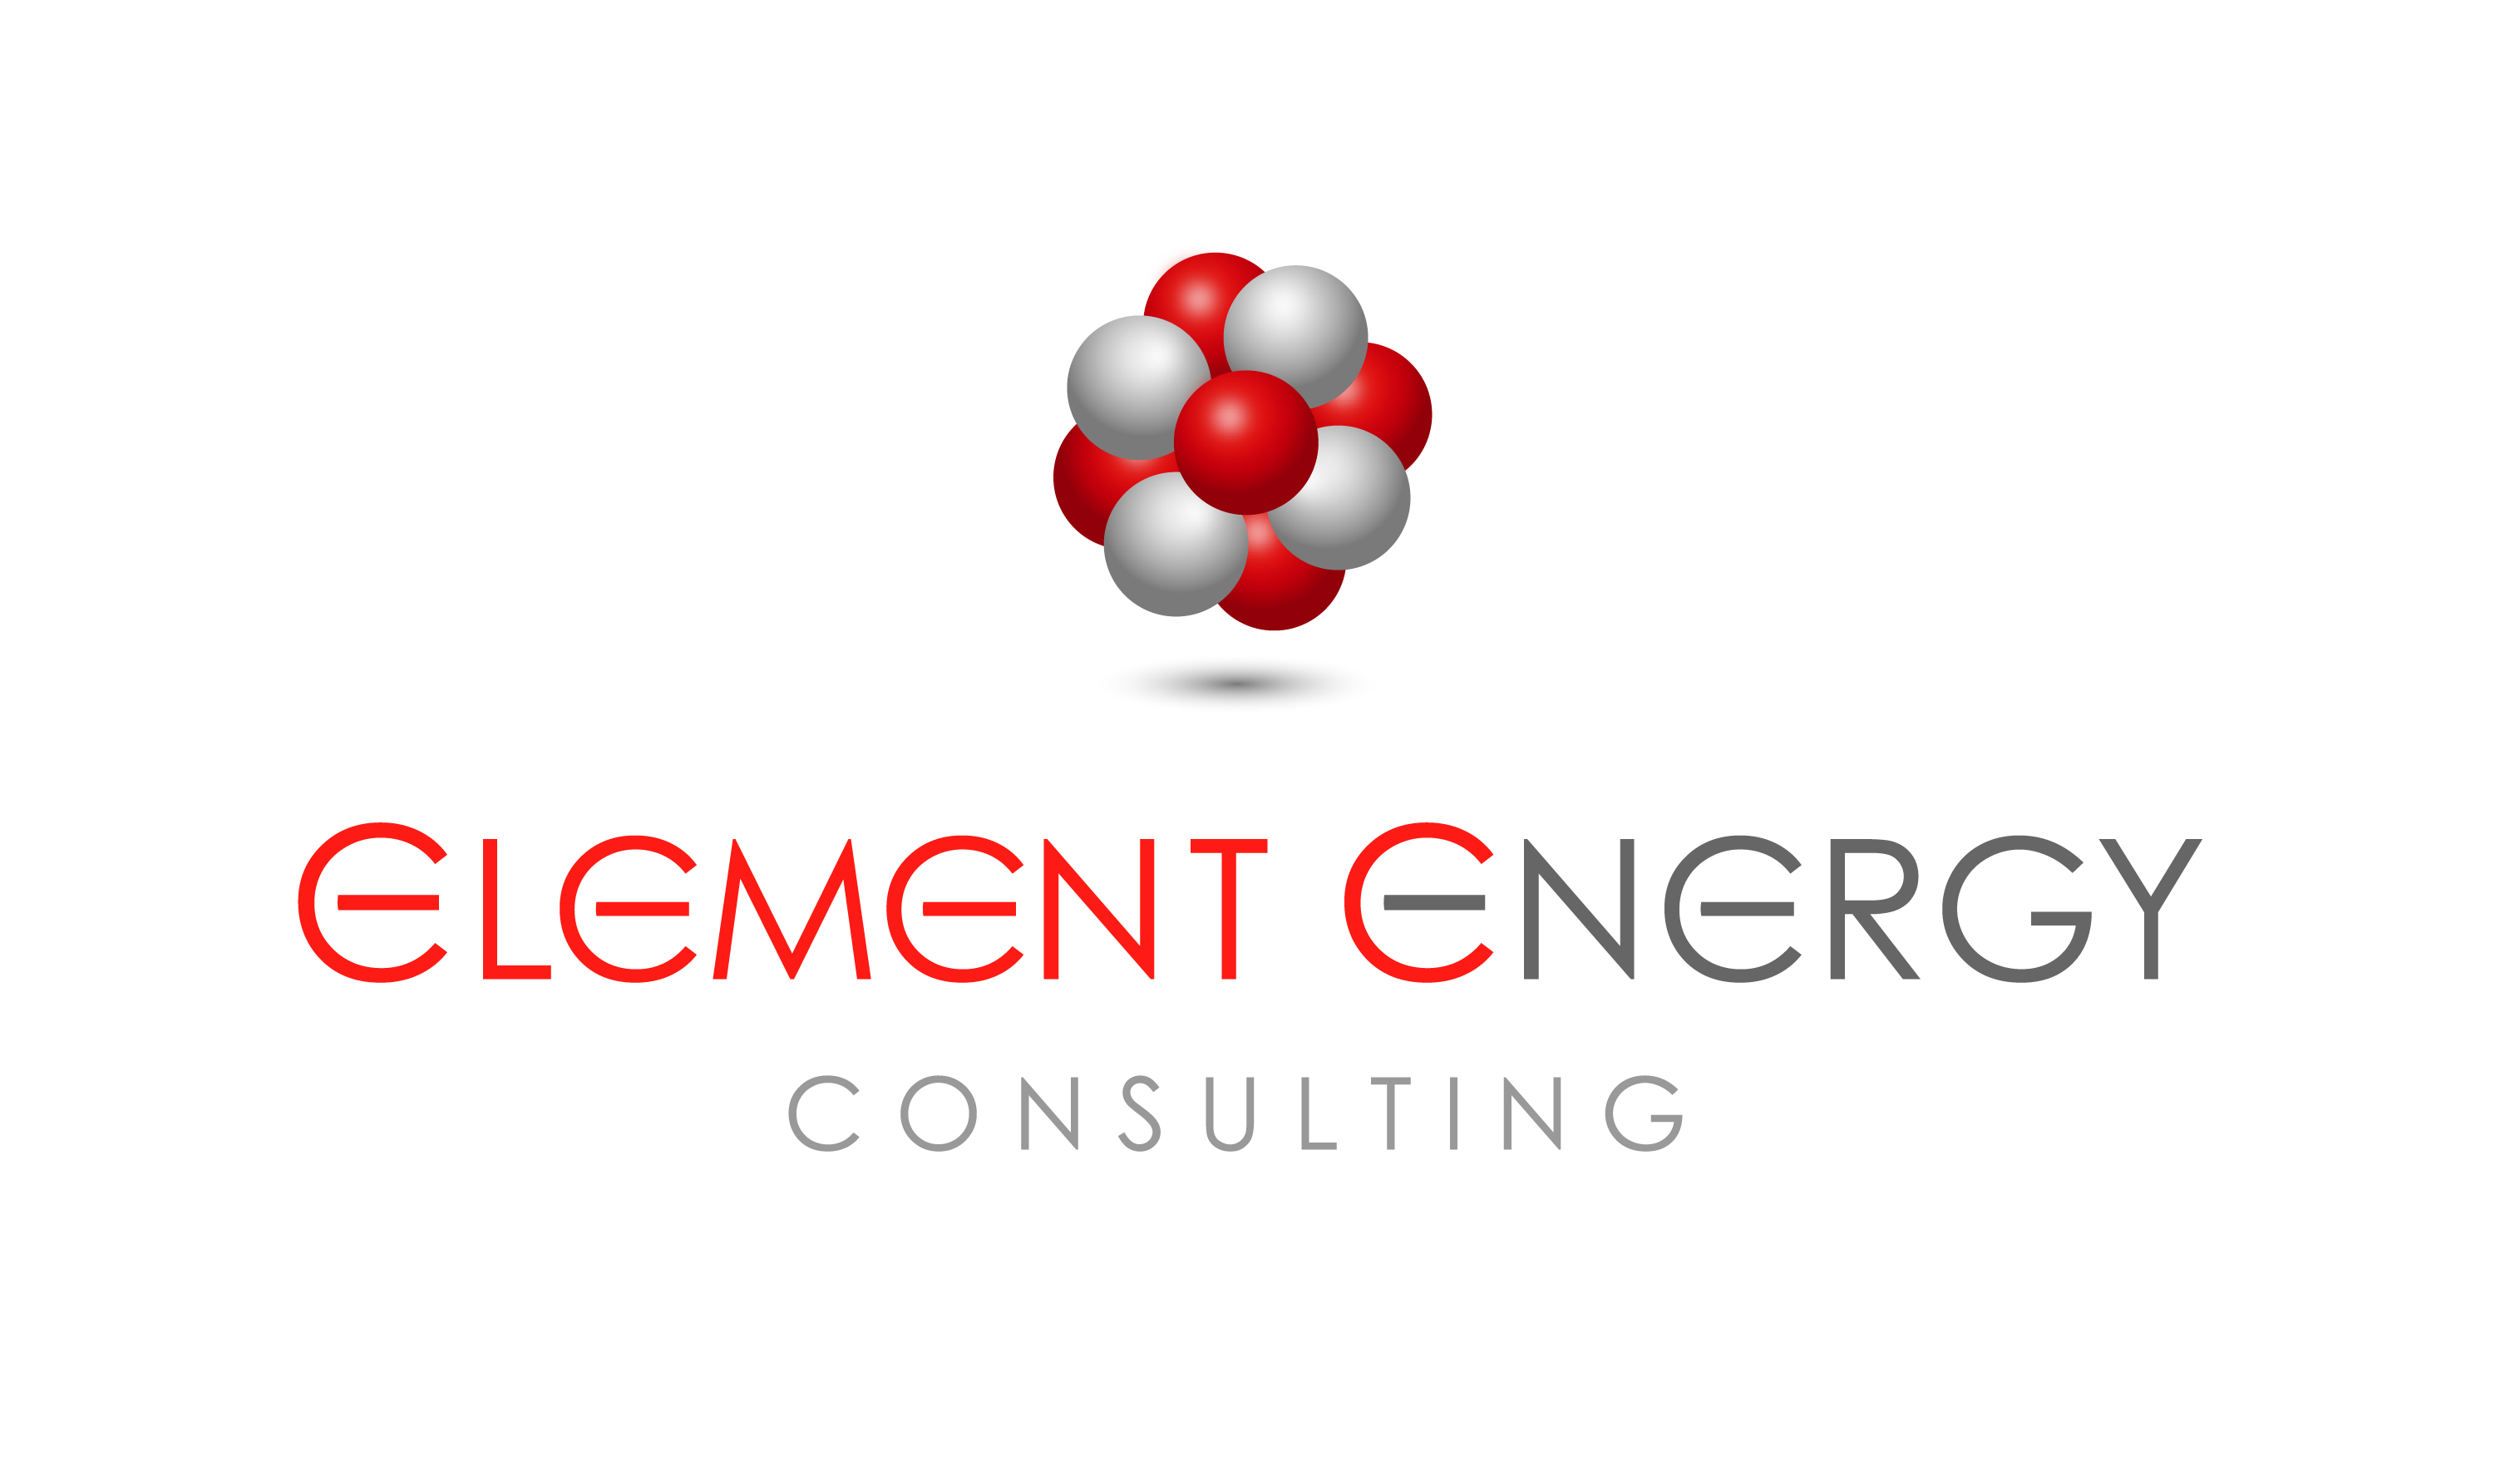 ELEMENT-ENERGY-LO-FF (3)